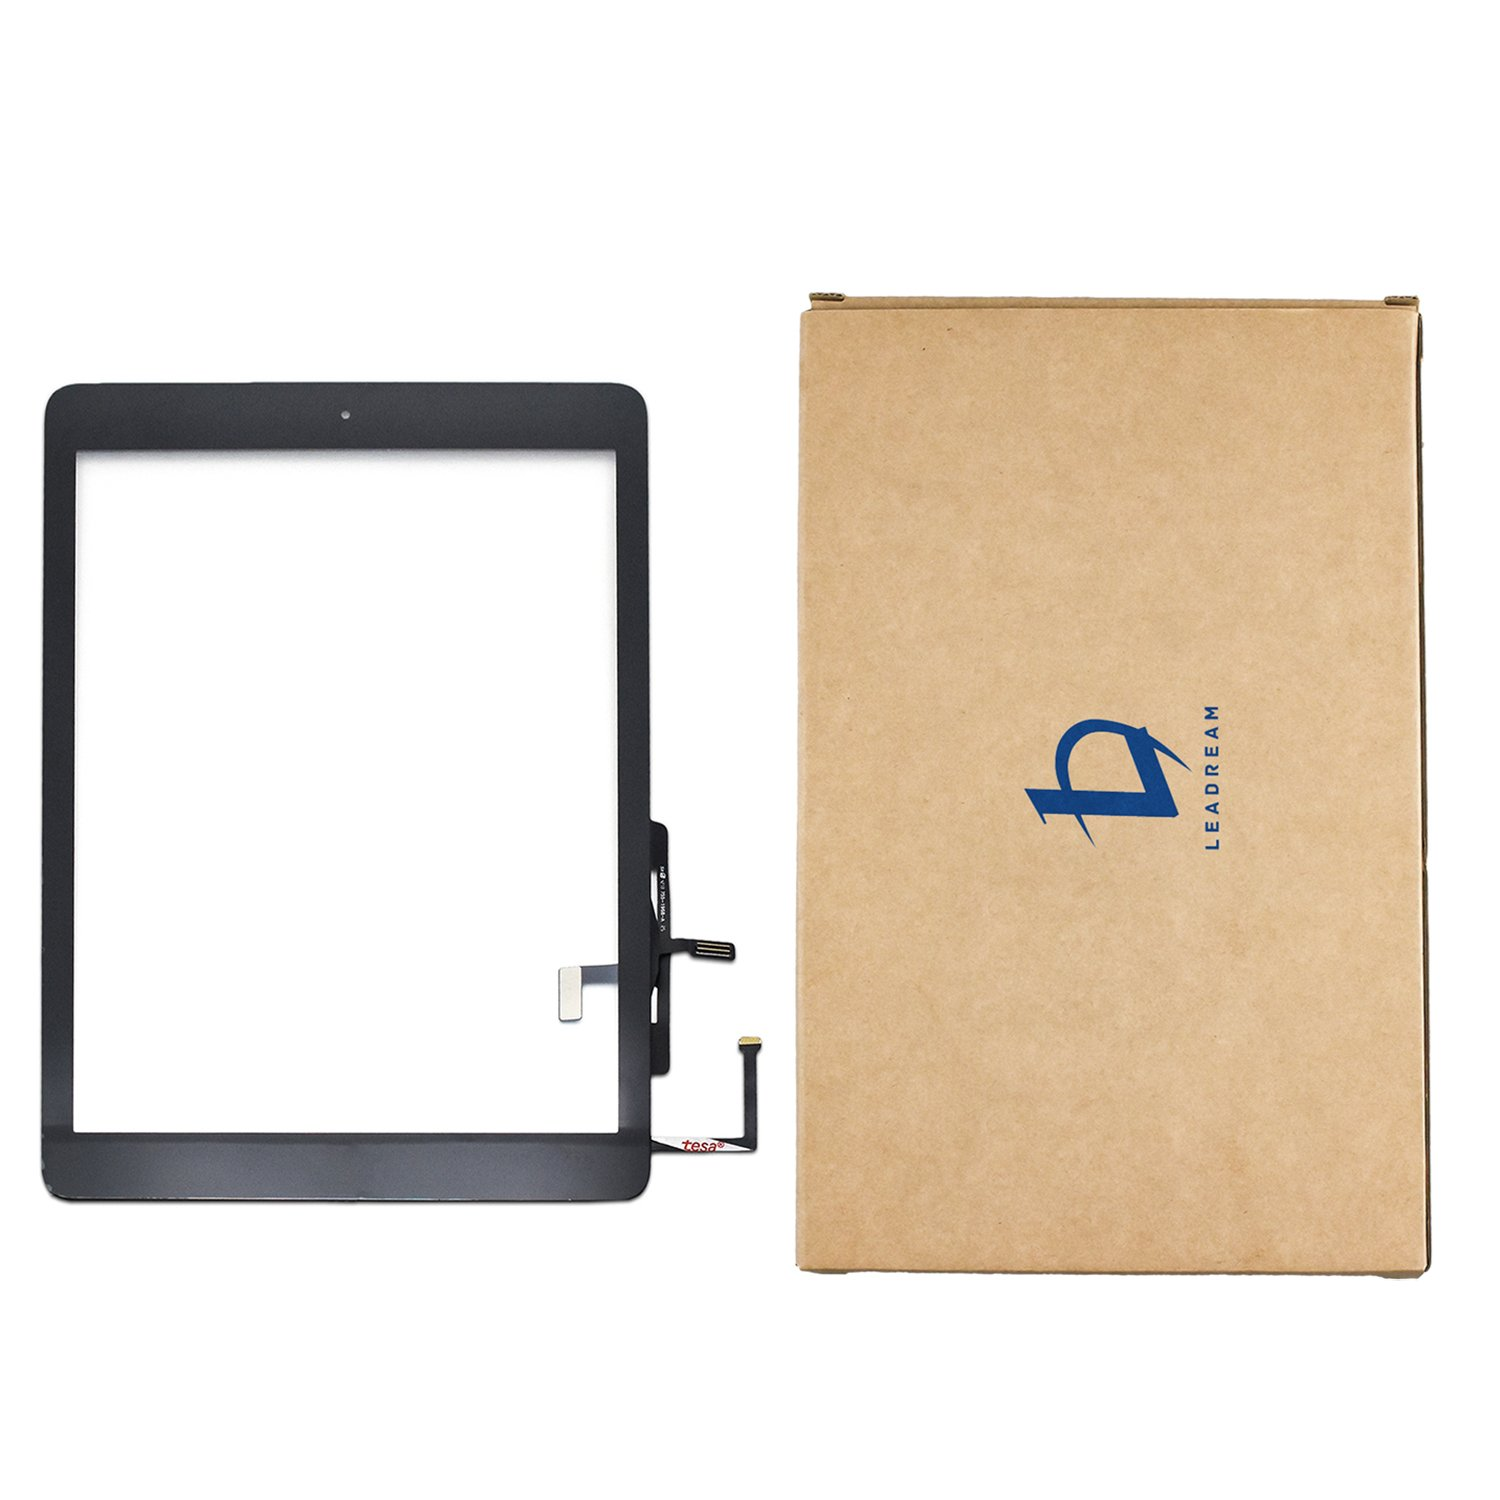 Aiiworld Digitizer Replacement Touch Screen for Ipad Air 1 1st Generation A1474 A1475 A1476, 9.7'' Touch Panel Parts with Home Button, Camera Bracket, Adhesive Pre-installed (Black)